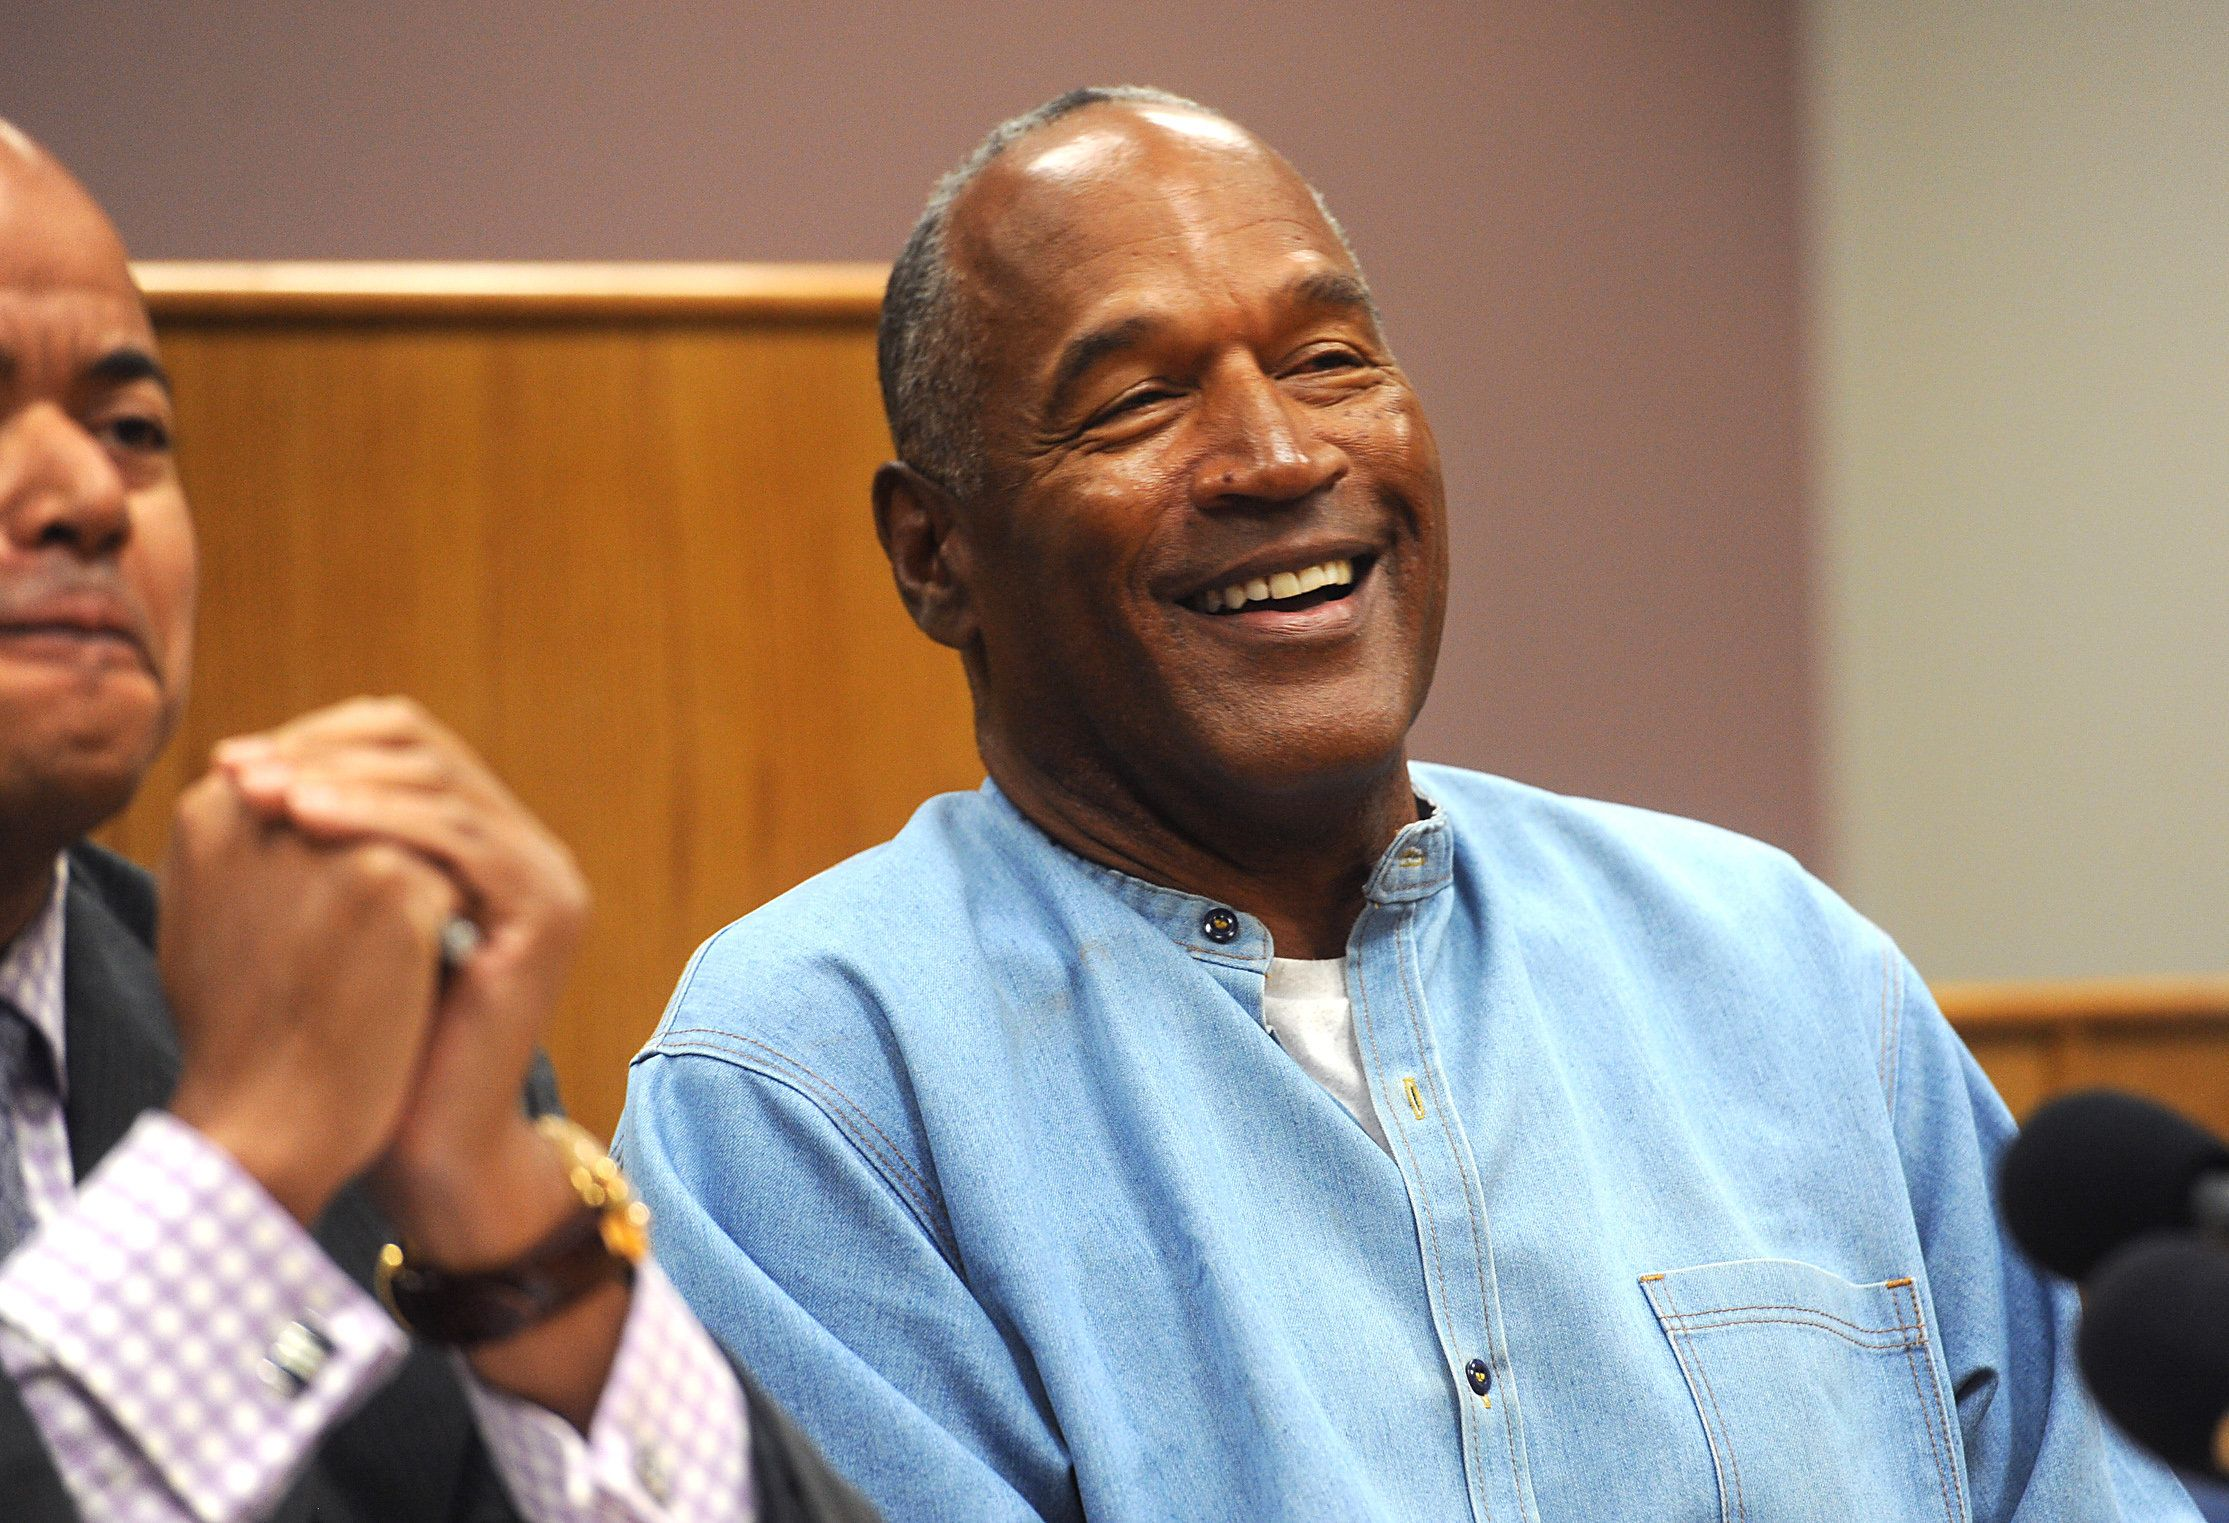 LOVELOCK, NV - JULY 20: O.J. Simpson attends his parole hearing at Lovelock Correctional Center July 20, 2017 in Lovelock, Nevada. Simpson is serving a nine to 33 year prison term for a 2007 armed robbery and kidnapping conviction. (Photo by Jason Bean-Pool/Getty Images)